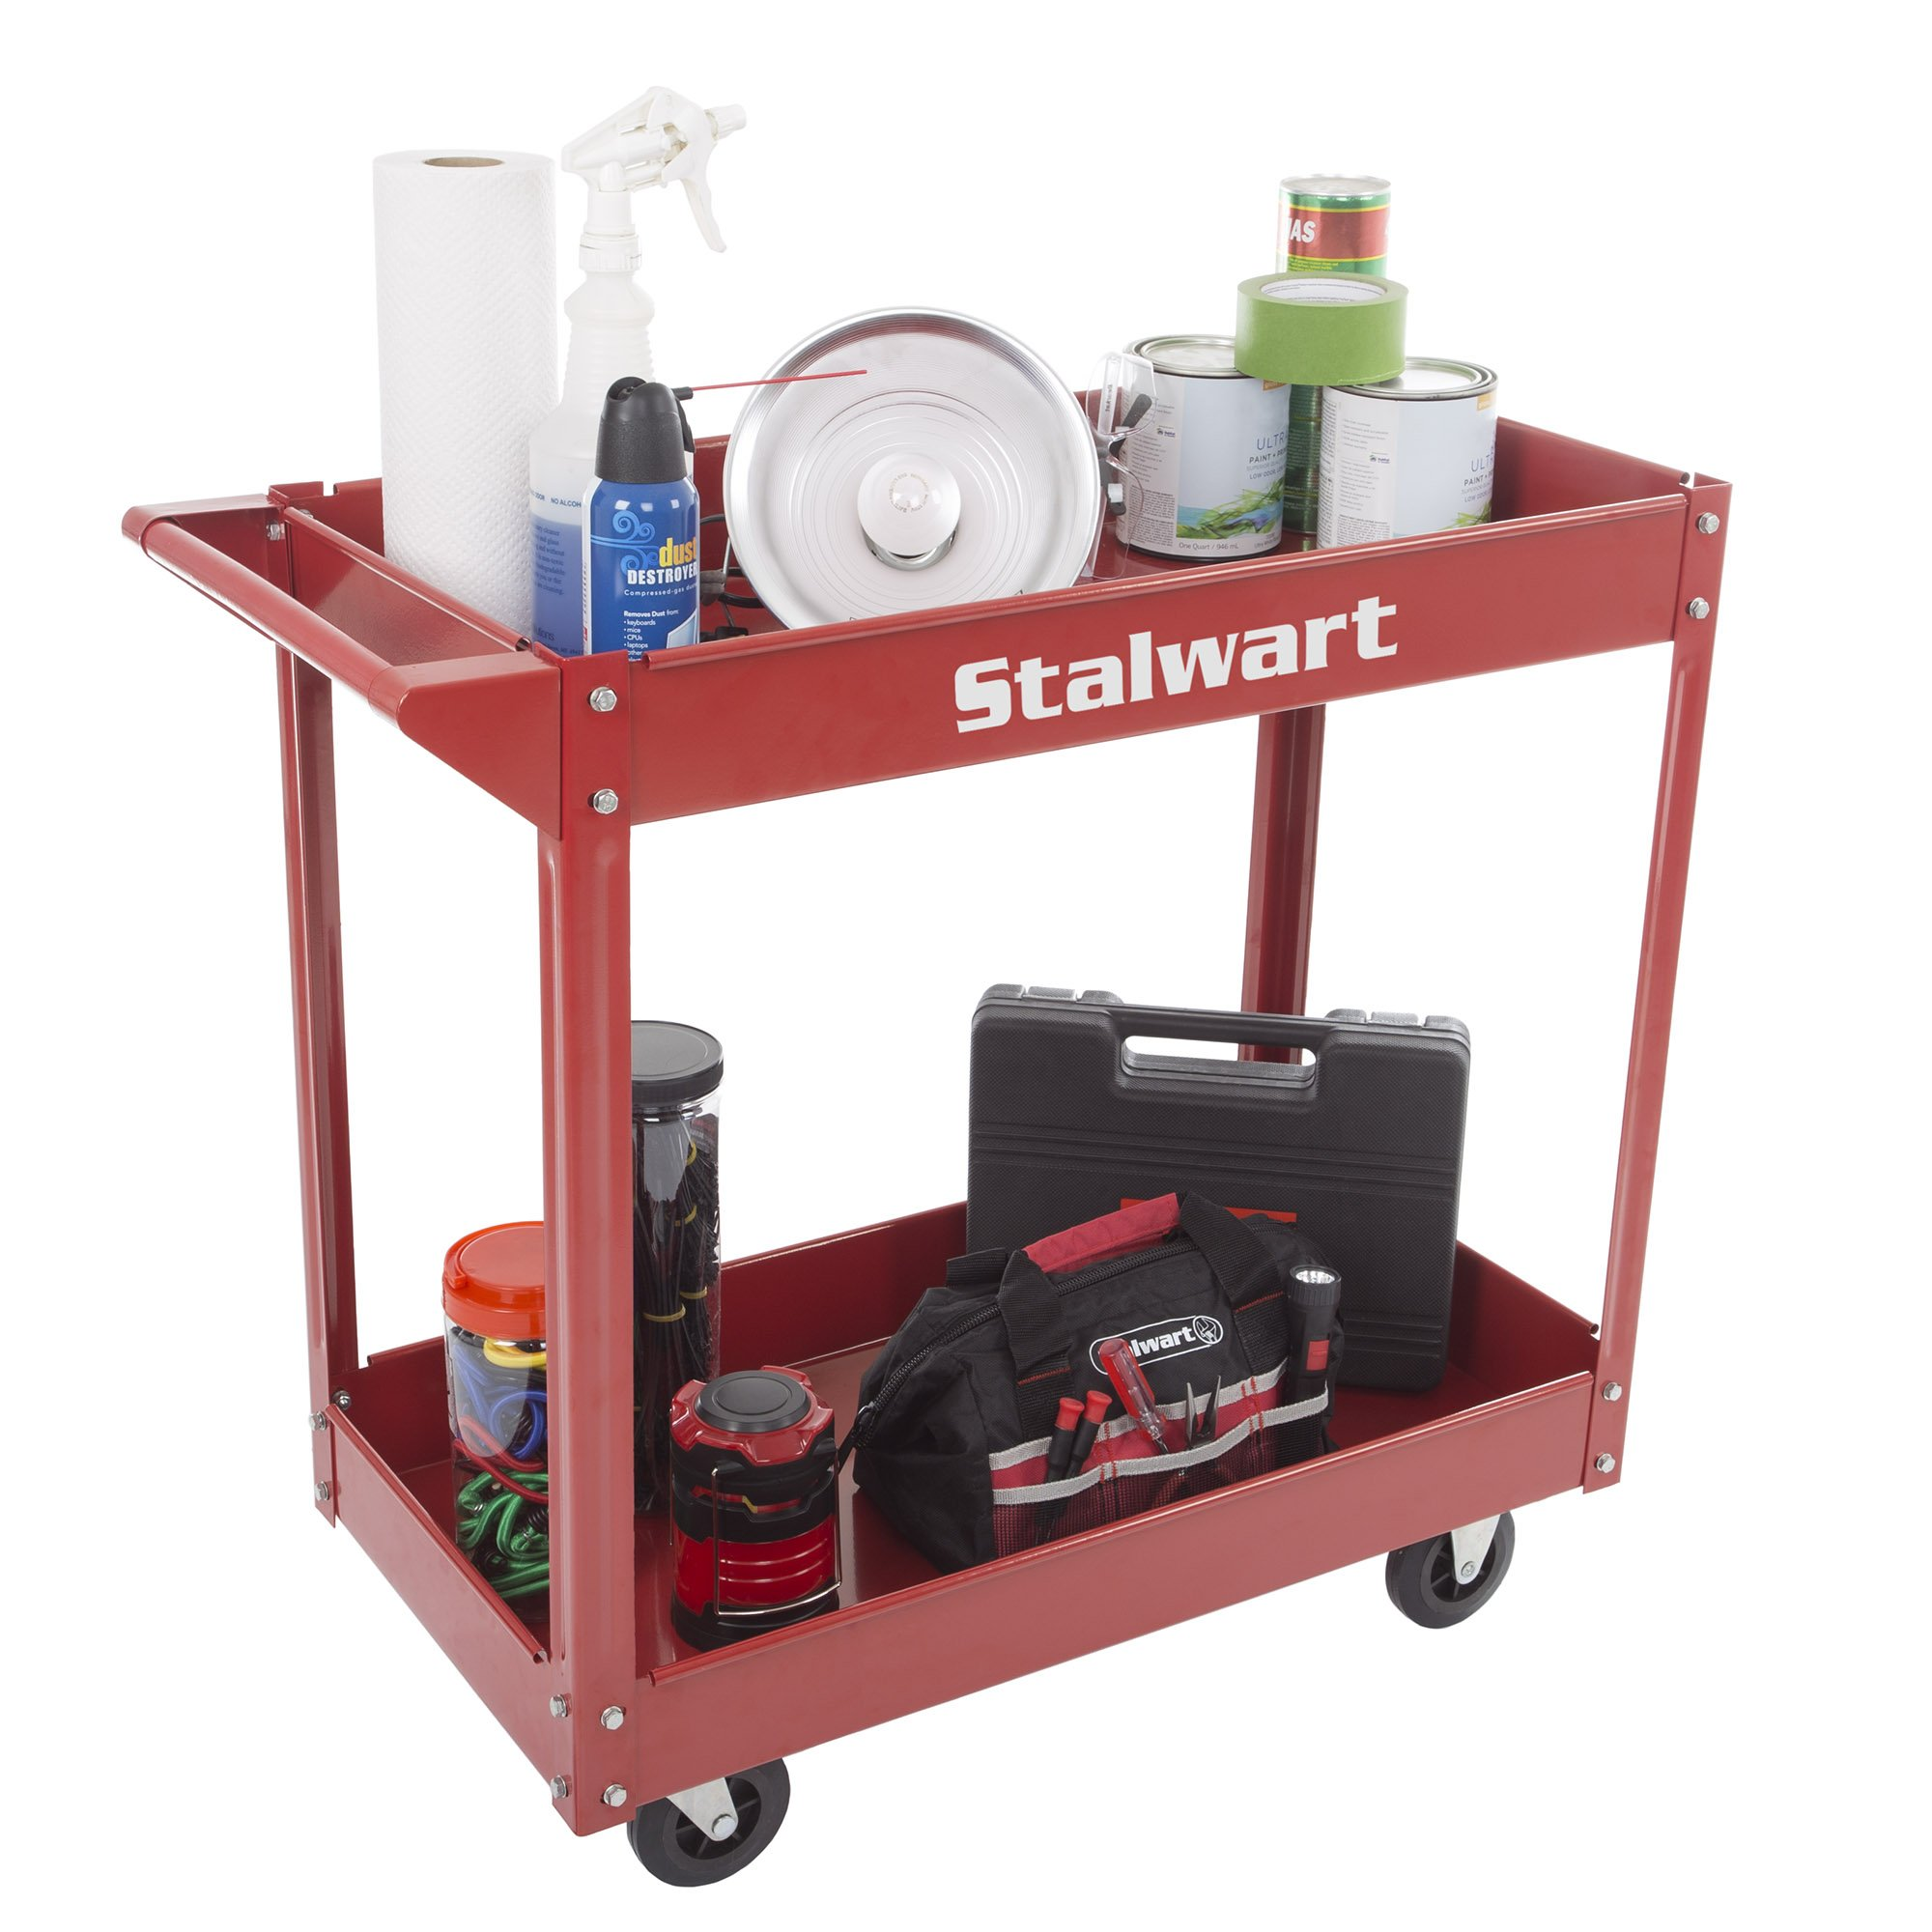 Metal Service Utility Cart, Heavy Duty Supply Cart with Two Storage Tray Shelves- 330 lbs Capacity By Stalwart (Red) by Stalwart (Image #2)